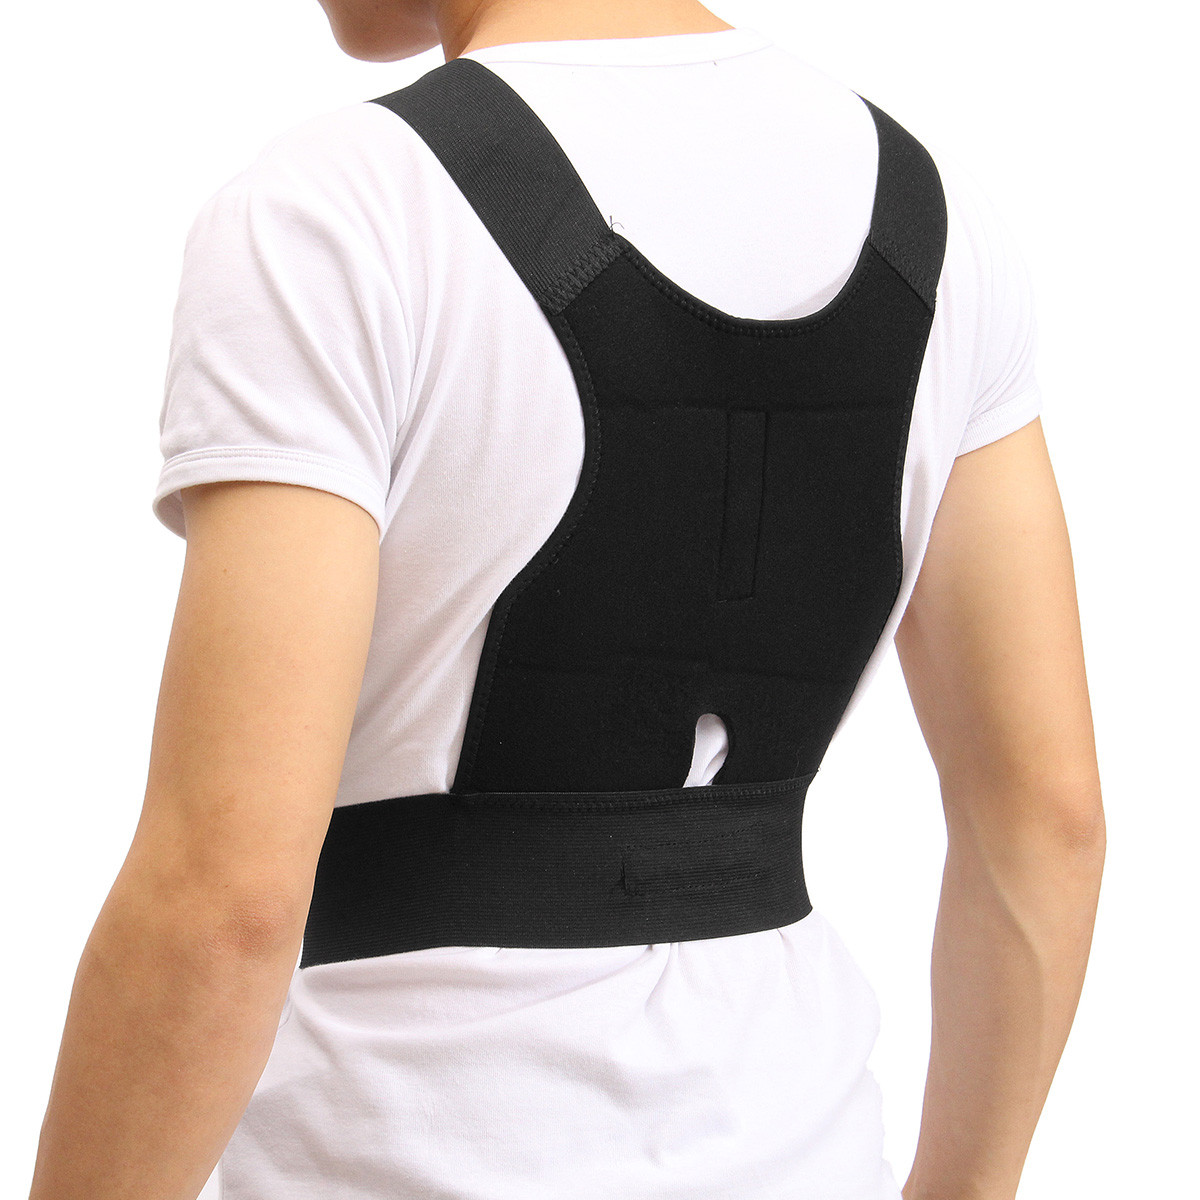 Adjustable Magnetic Posture Corrector Belt